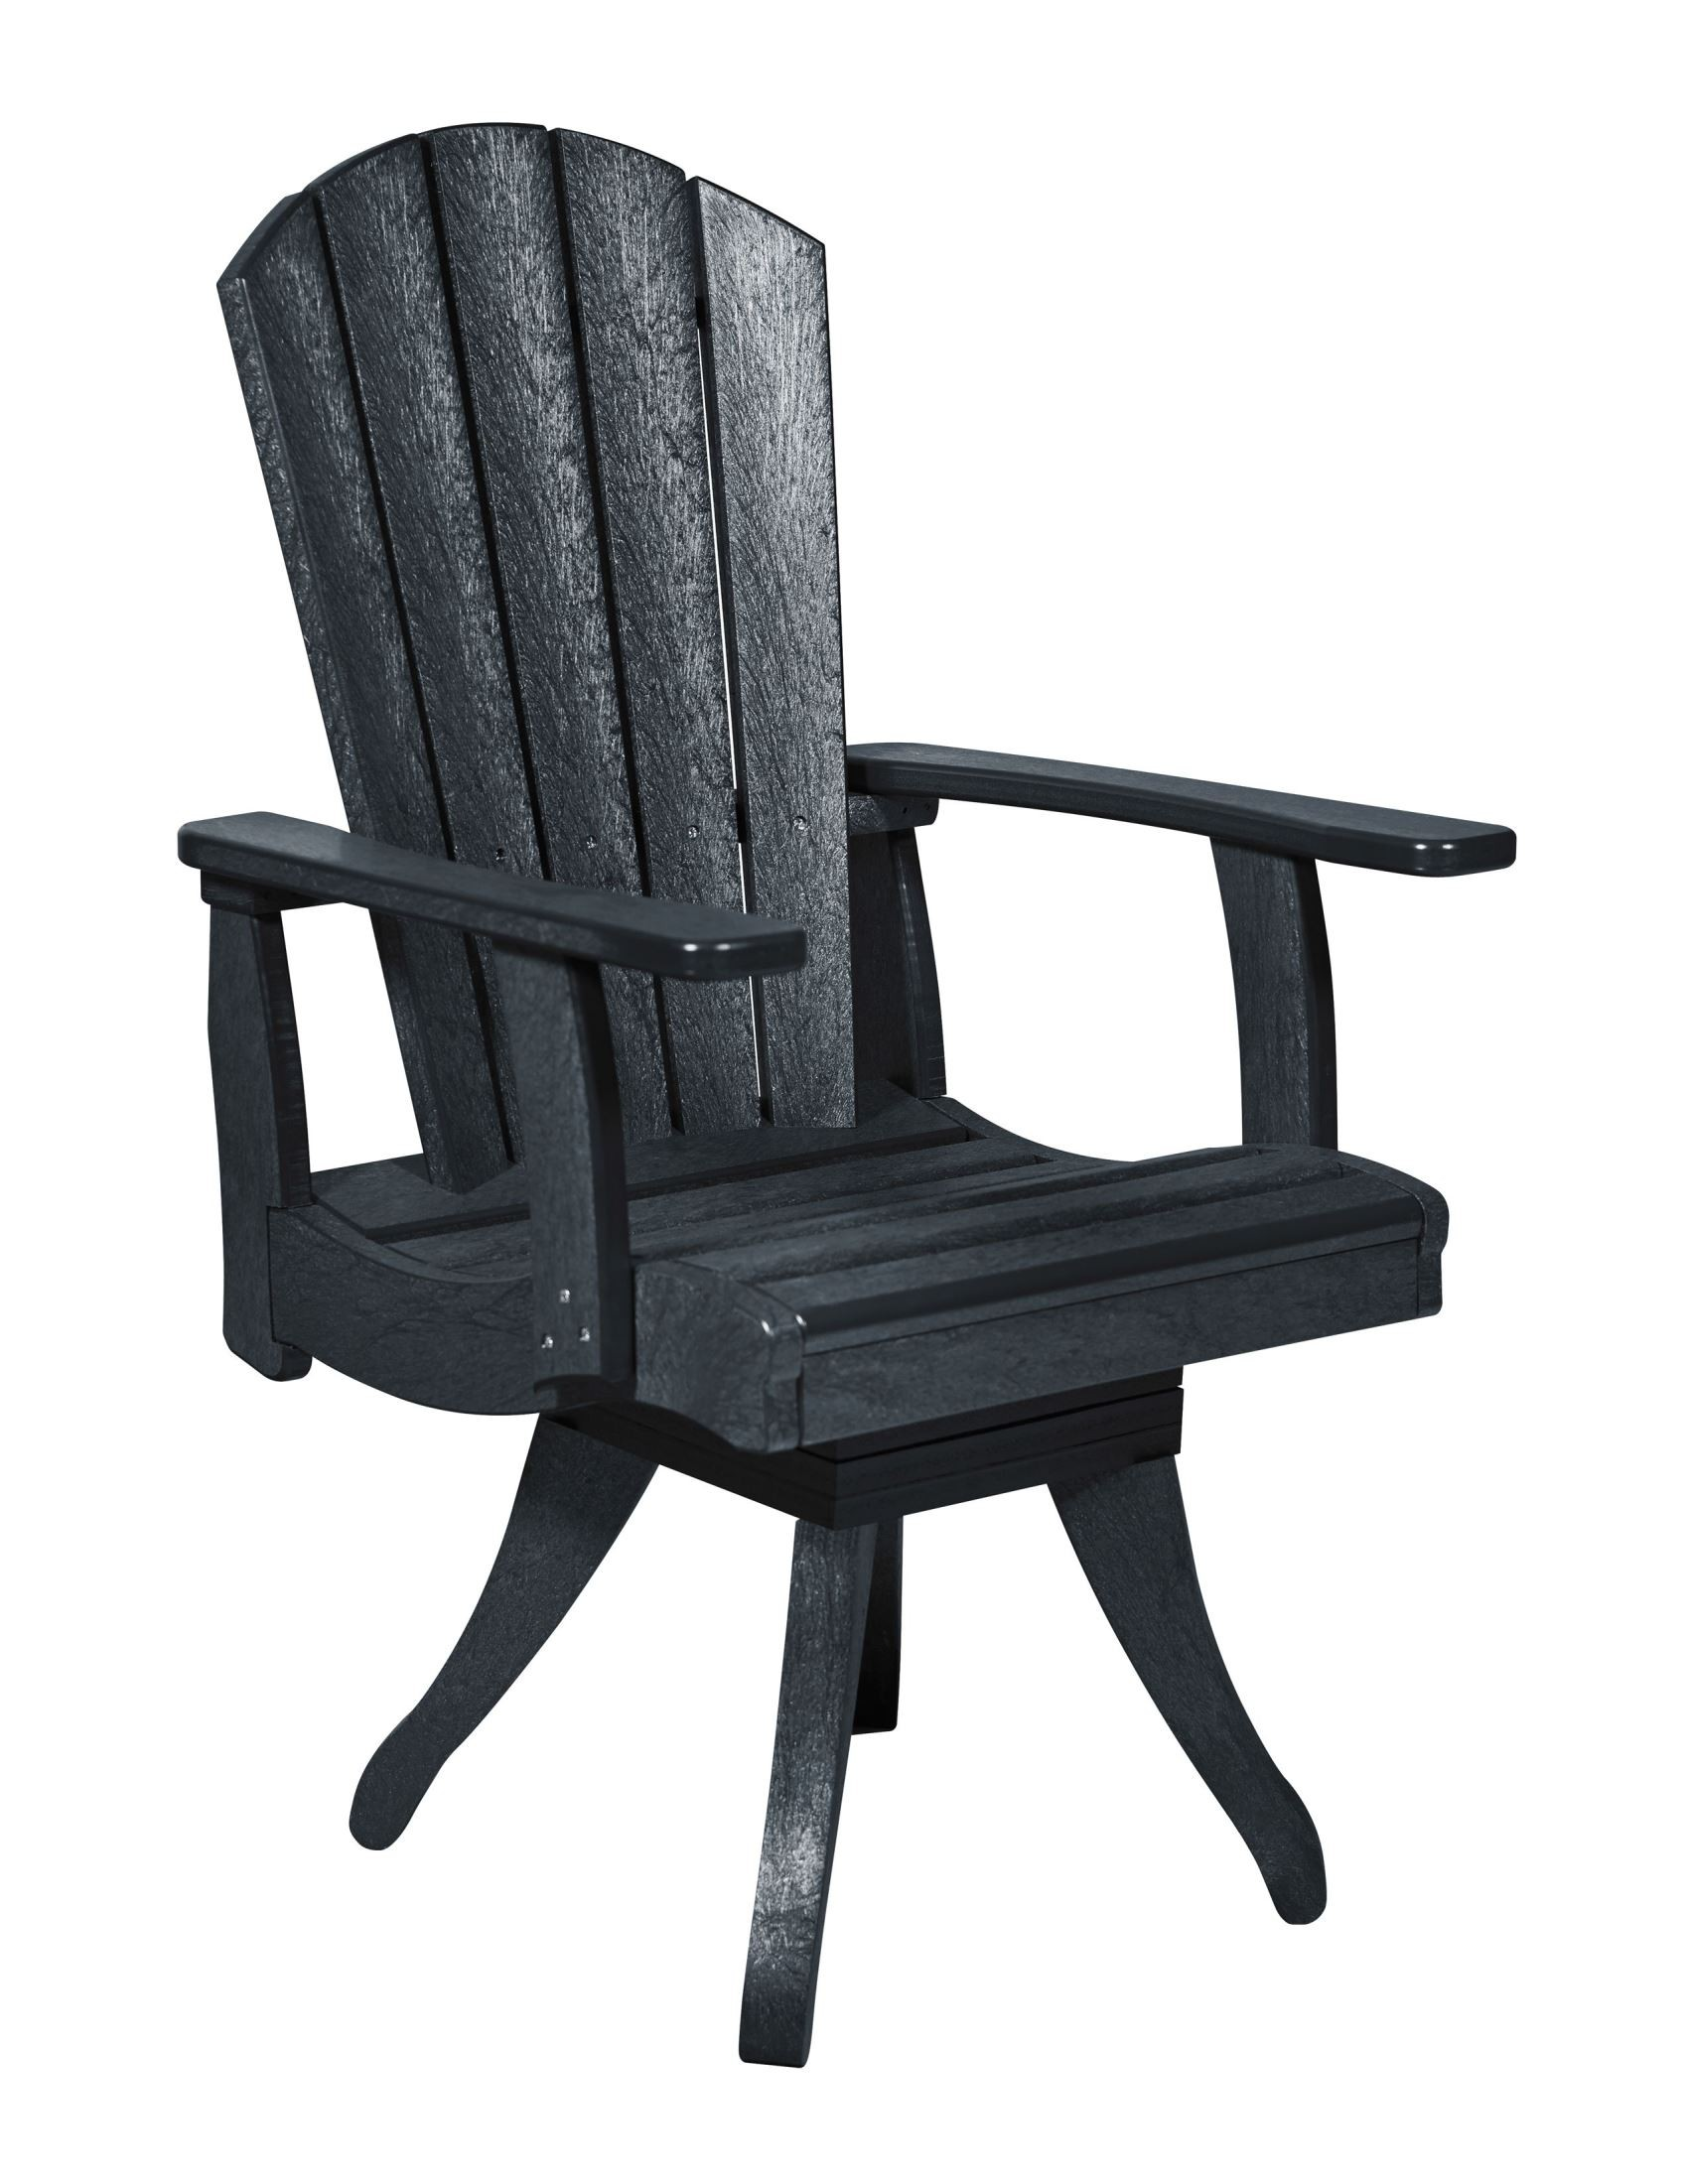 Generations Black Swivel Dining Arm Chair from CR Plastic